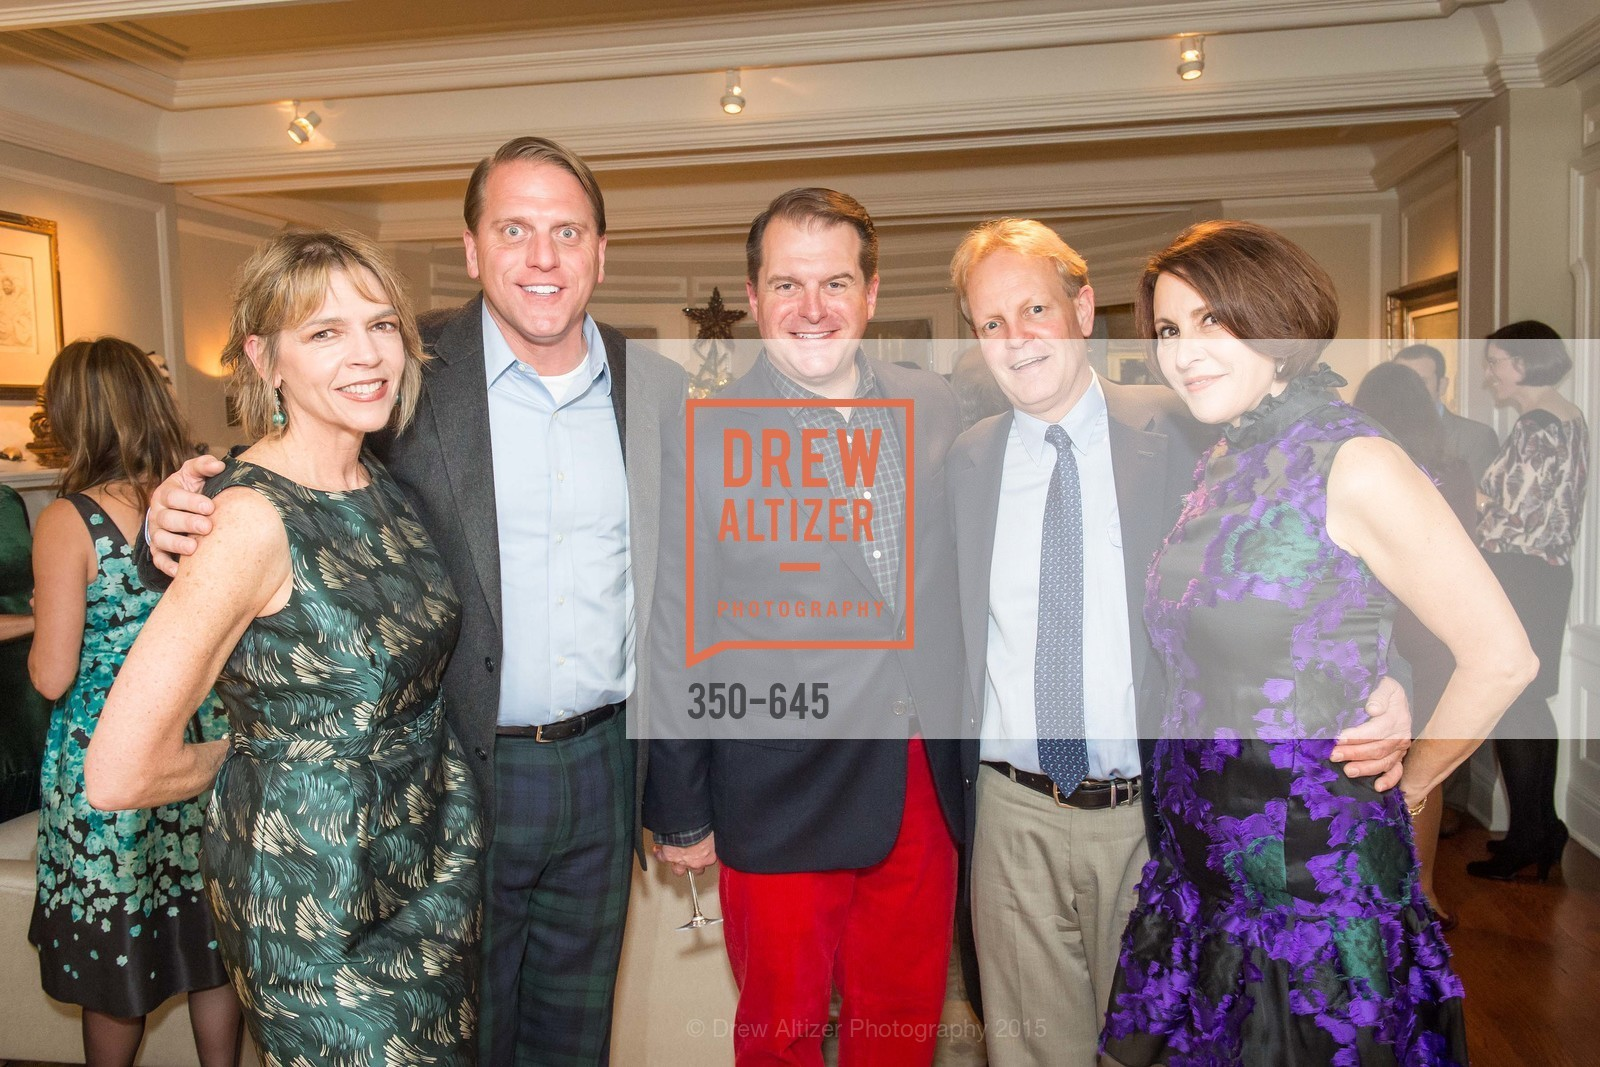 Beth Schnitzer, Scott Miller, Doug Piper, David Shuh, Susan Atherton, Atherton Holiday Party, Private Residence, December 12th, 2015,Drew Altizer, Drew Altizer Photography, full-service event agency, private events, San Francisco photographer, photographer California